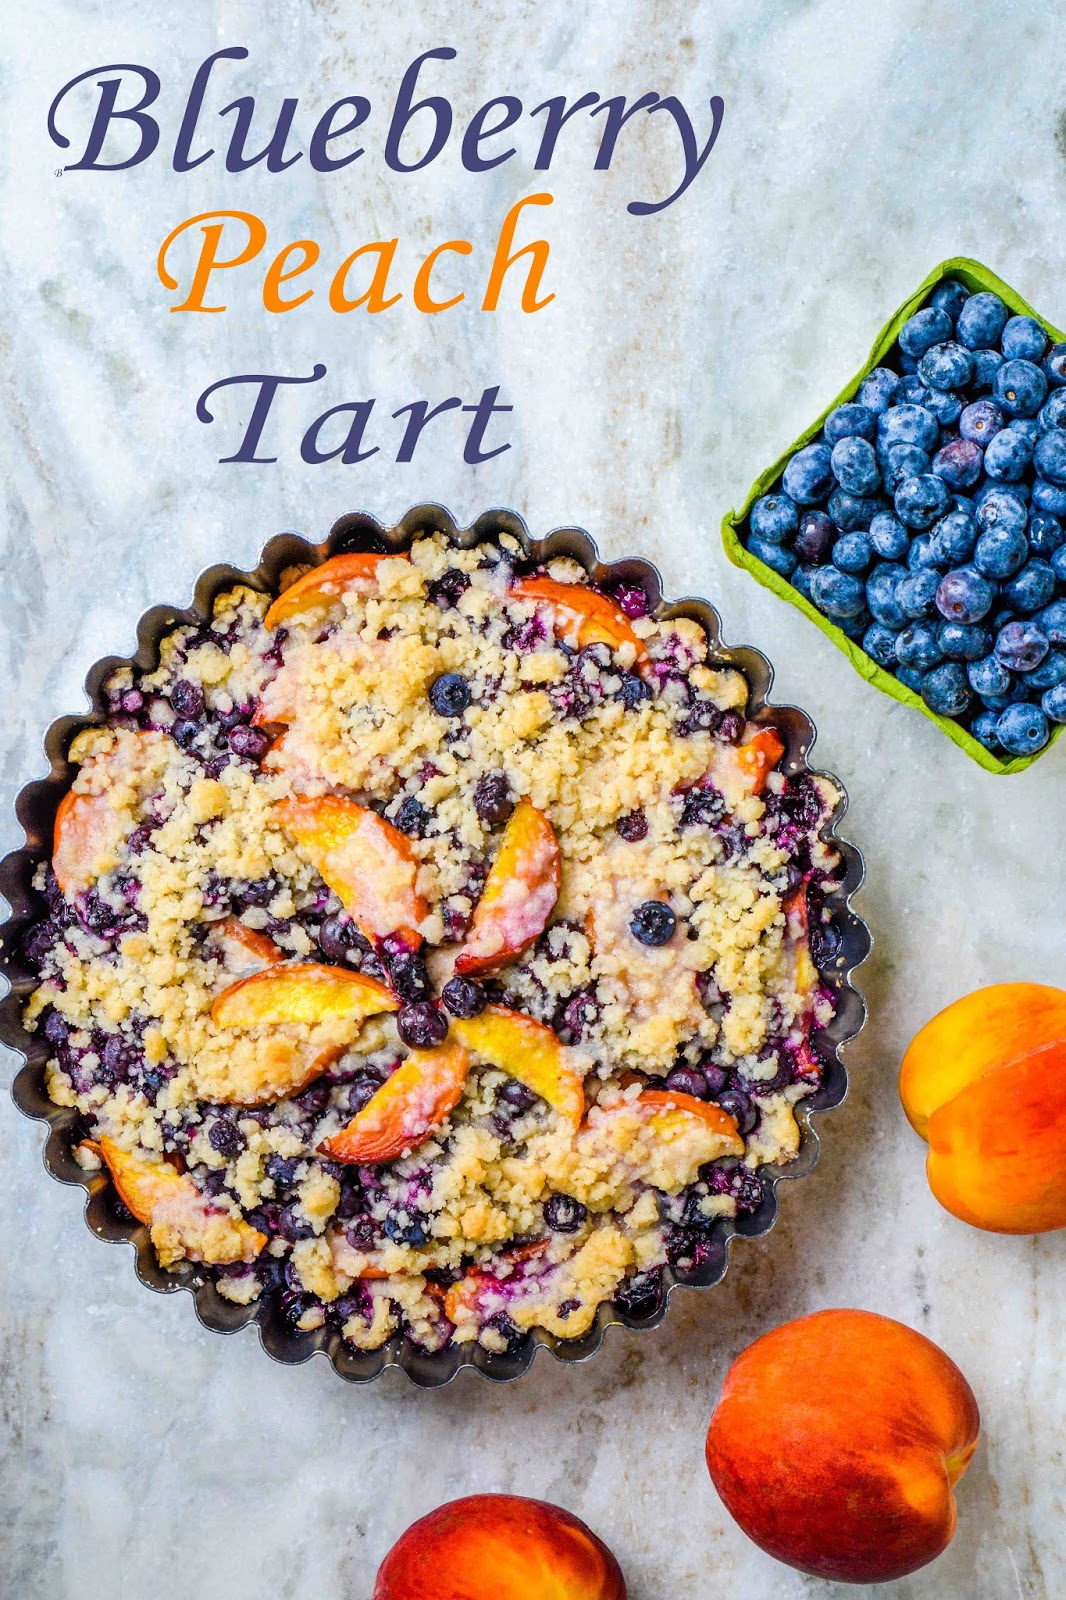 Blueberry Peach Crumble Tart